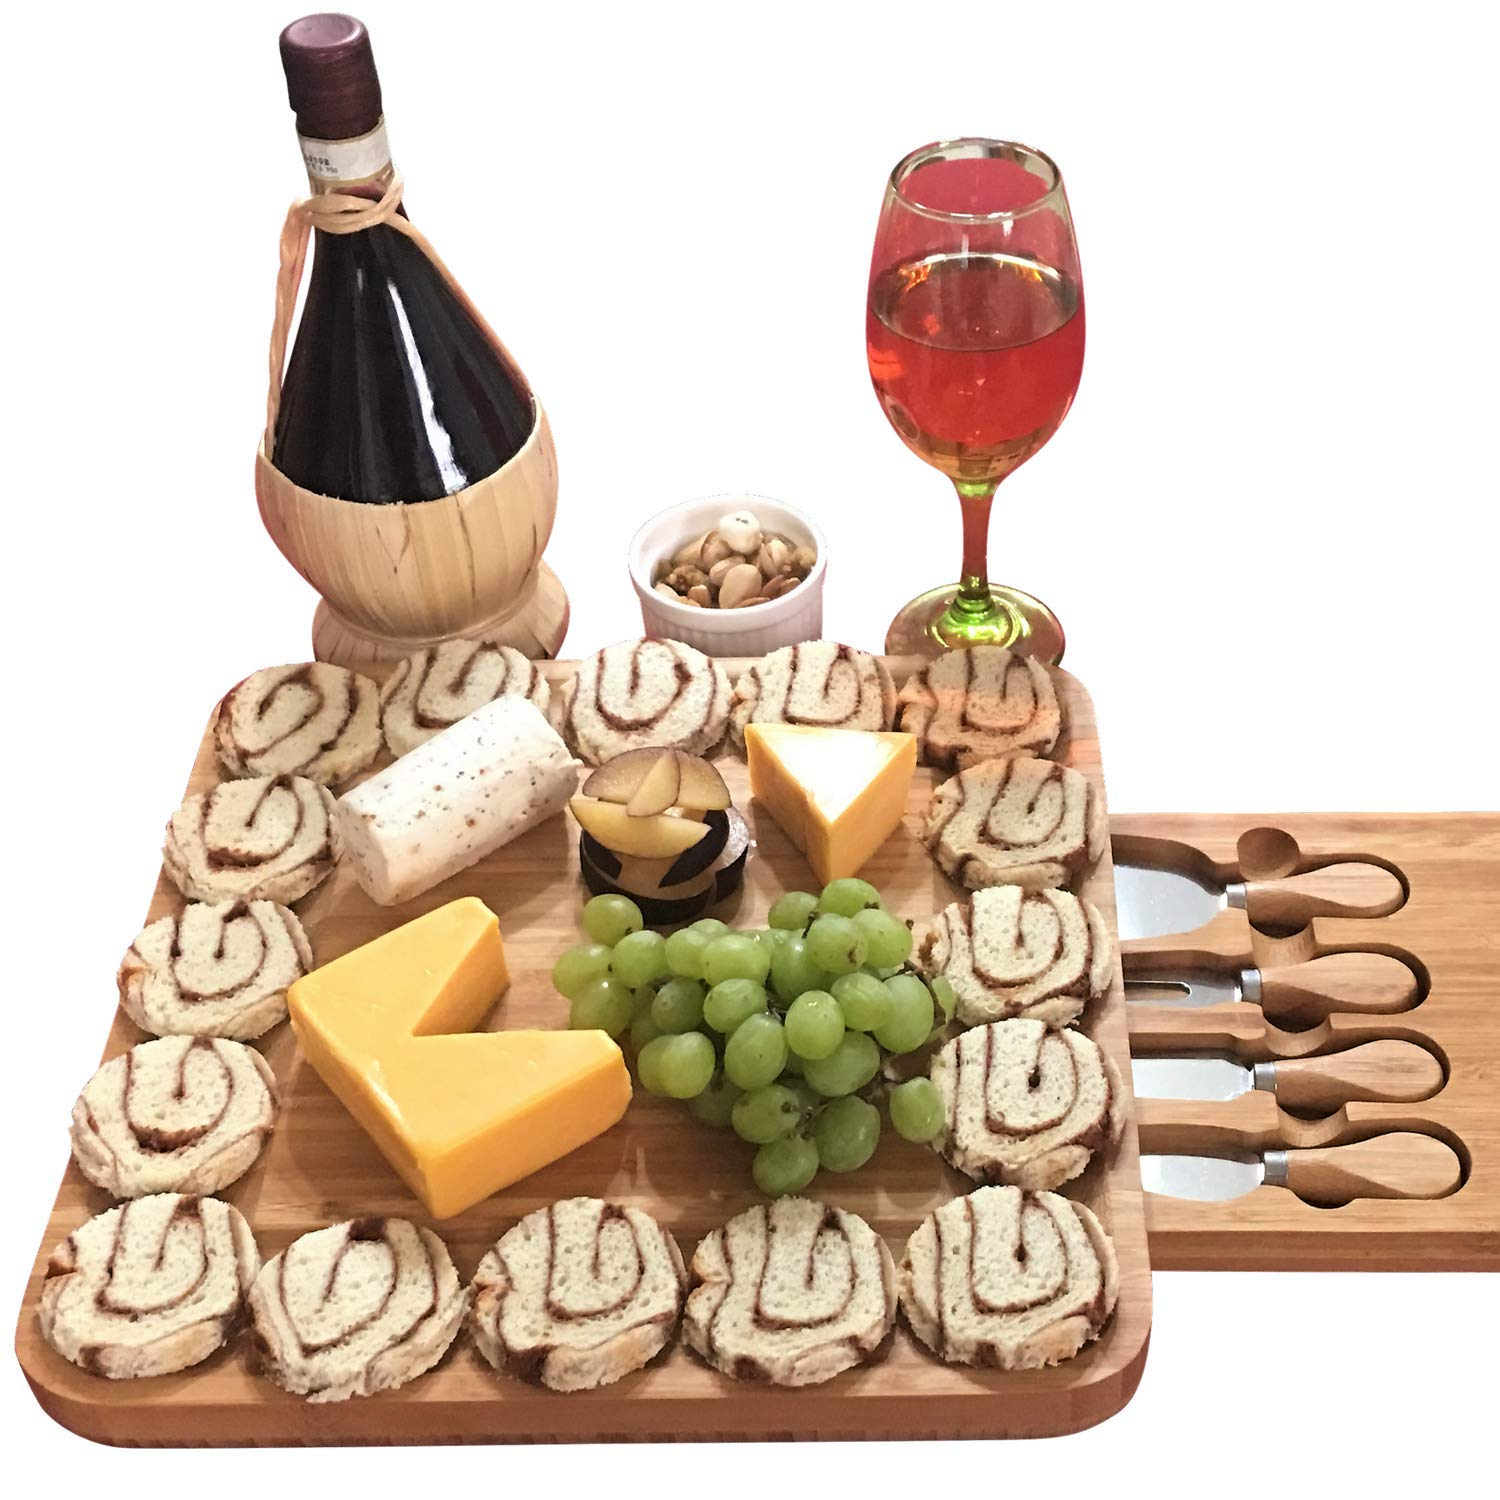 Unique gifts for Mom, Mothers, Women, Men Housewarming, Wedding, Birthday, Hostess, Bamboo Cheese Board w/Cutlery Set, Wood Charcuterie Platter & Meat Server, 4 Stainless Steel Knife, Slide-Out Drawer